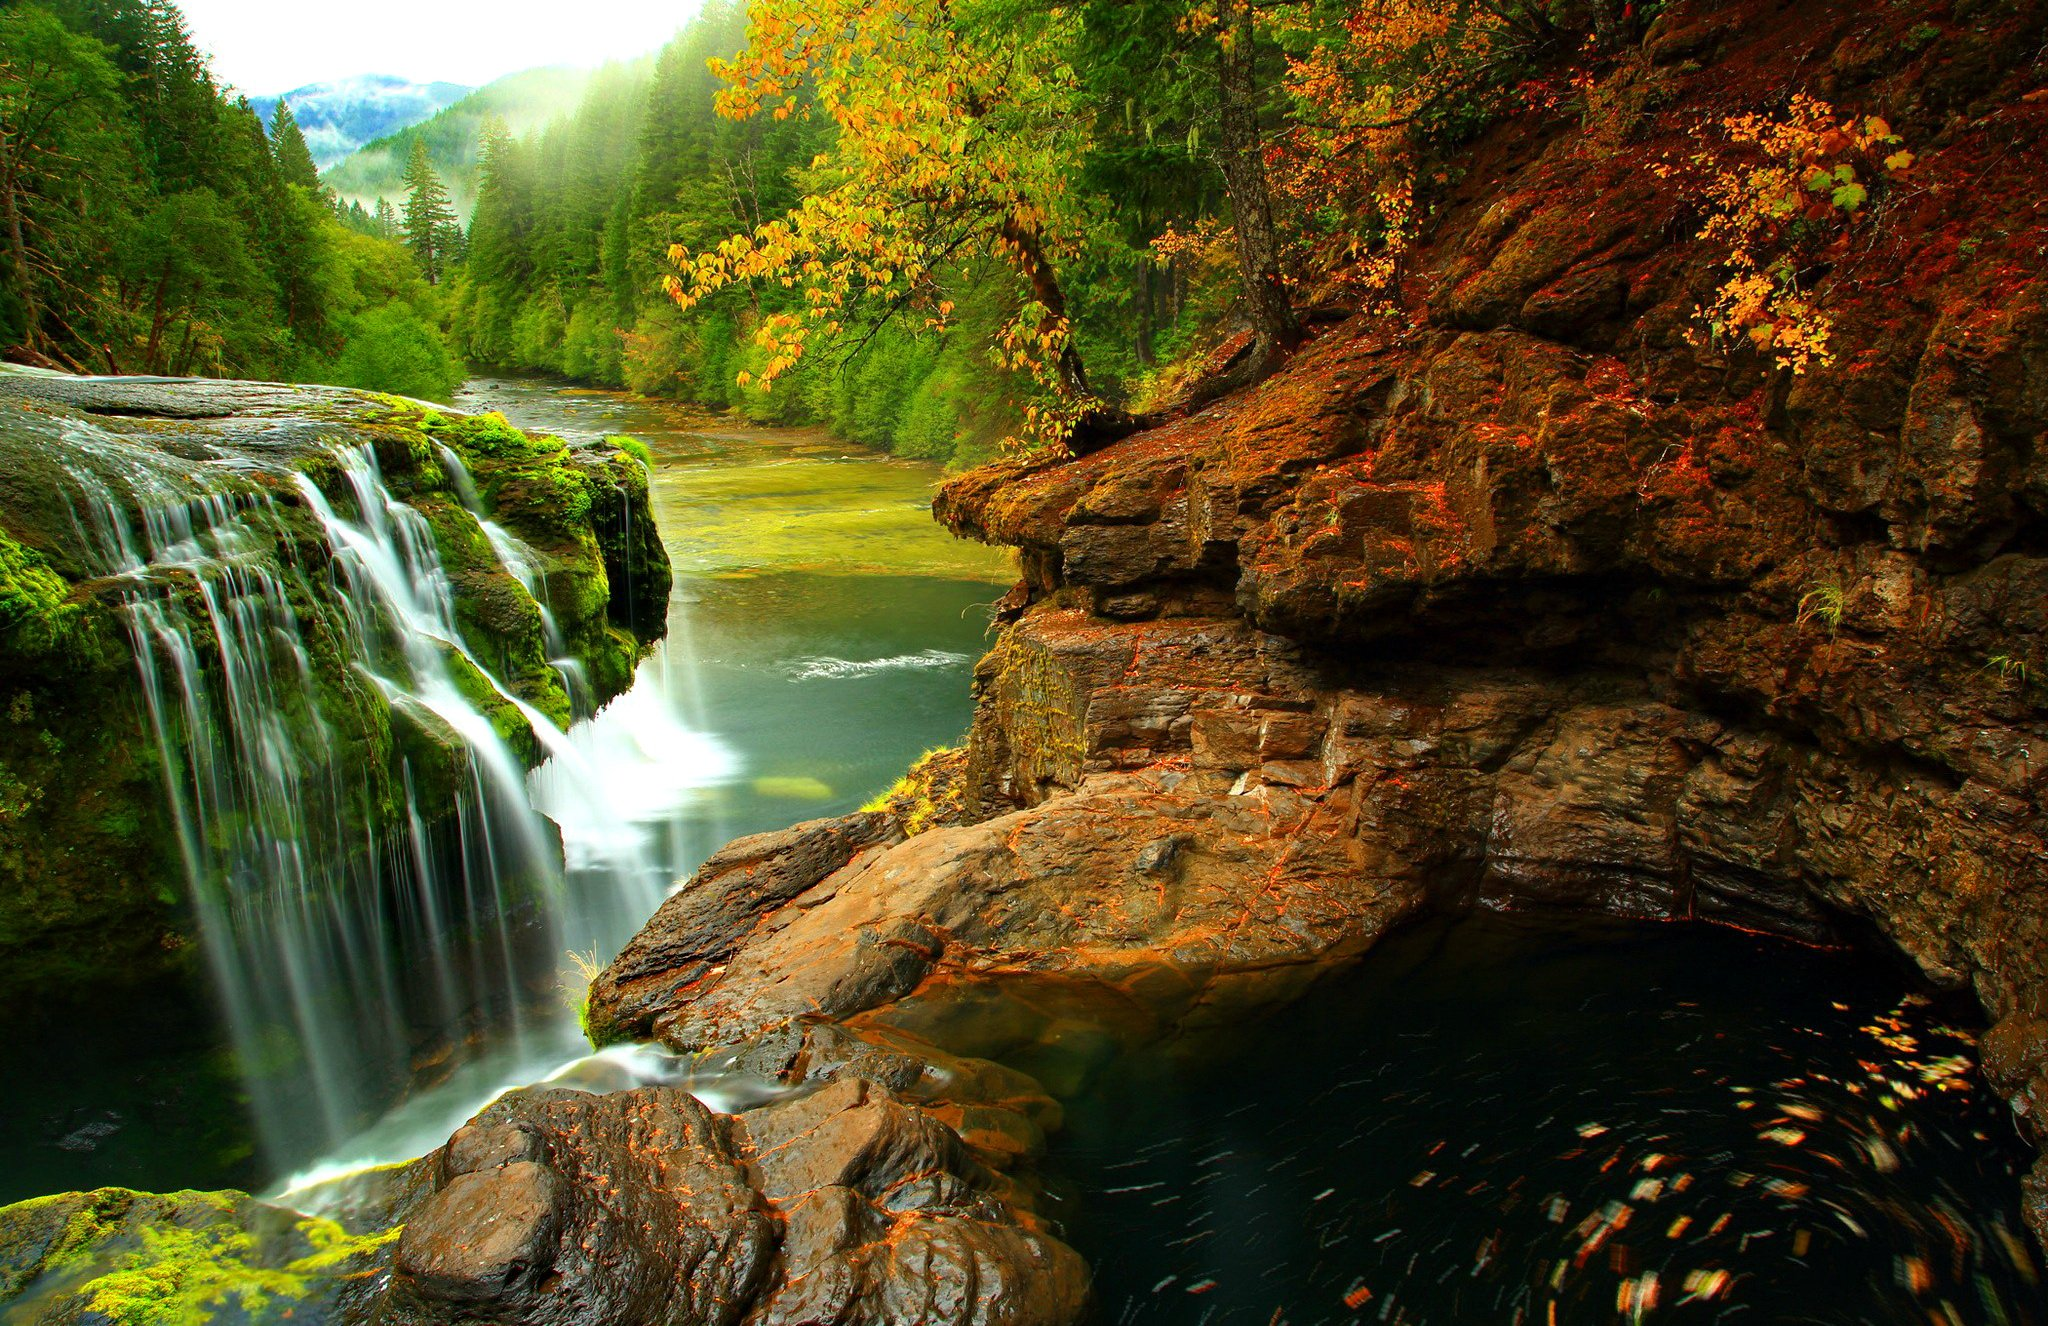 Nature wallpapers and desktop backgrounds up to 8k - Nature wallpaper 8k ...